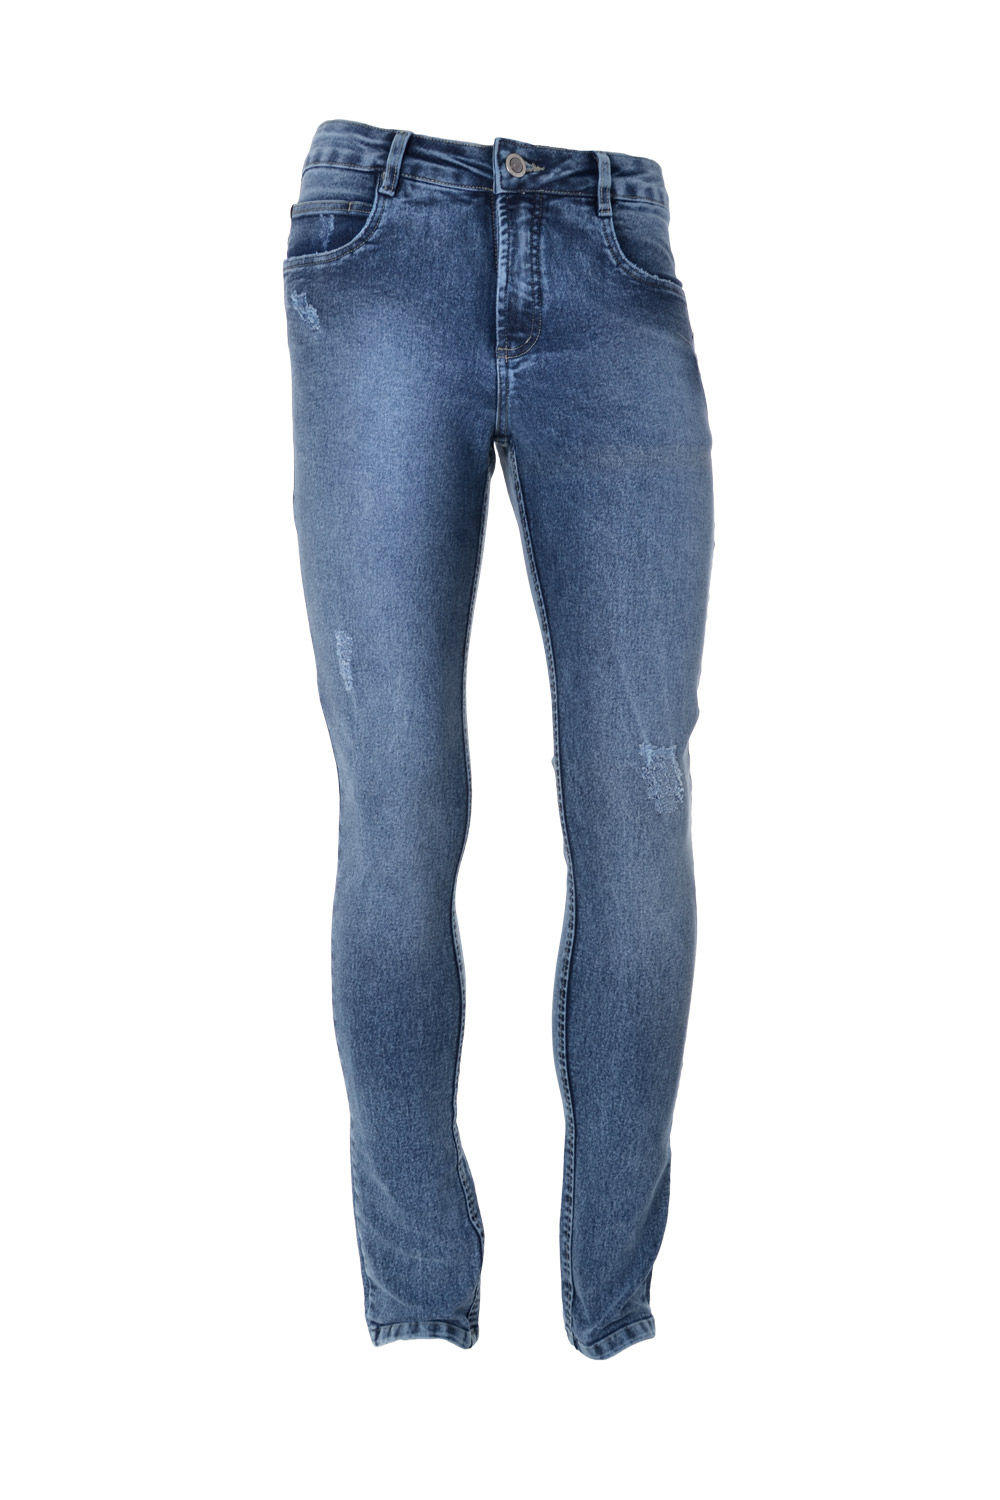 CALÇA JEANS BLUES POLIALGODAO & ELASTANO STRETCH DESTROYED LIGHT